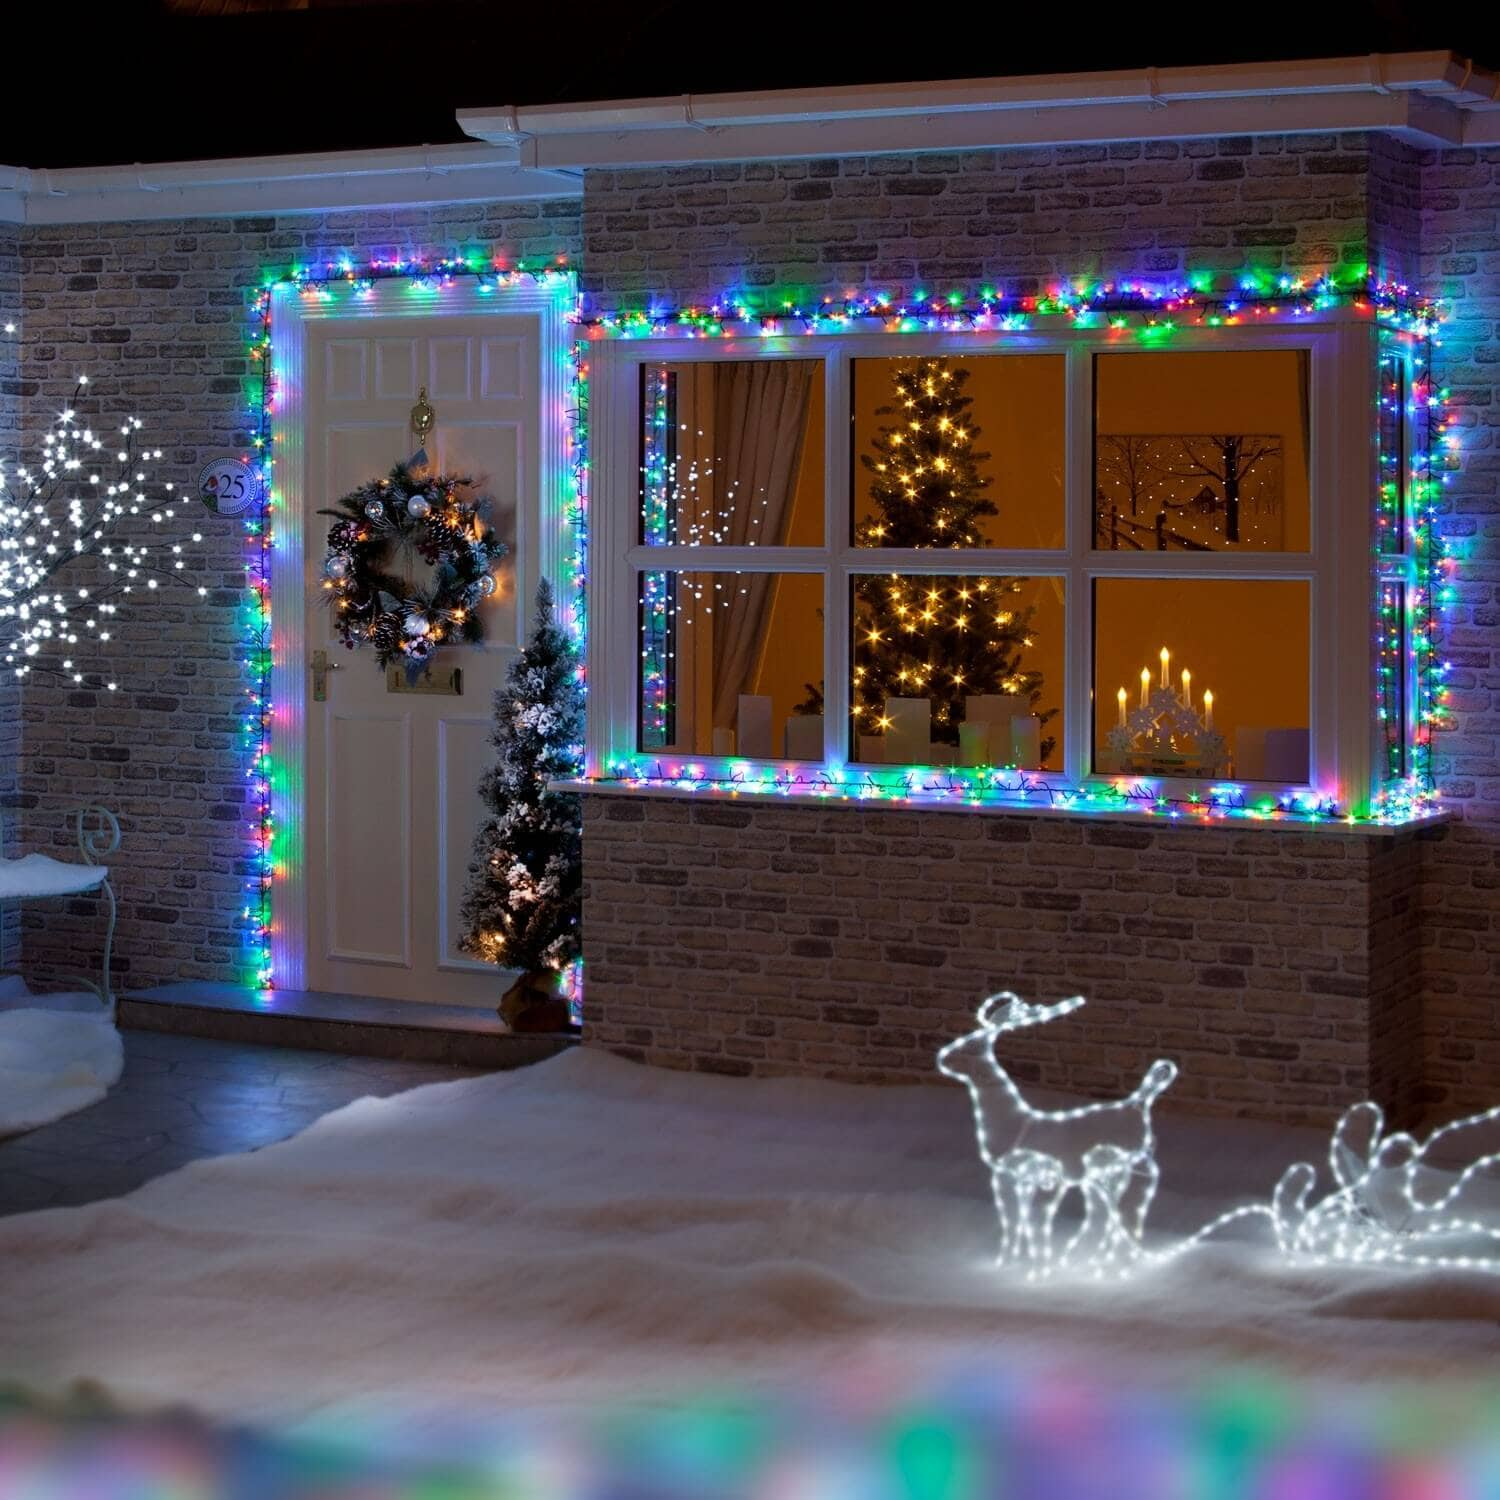 Best Window Lights Decoration Ideas for Christmas - The